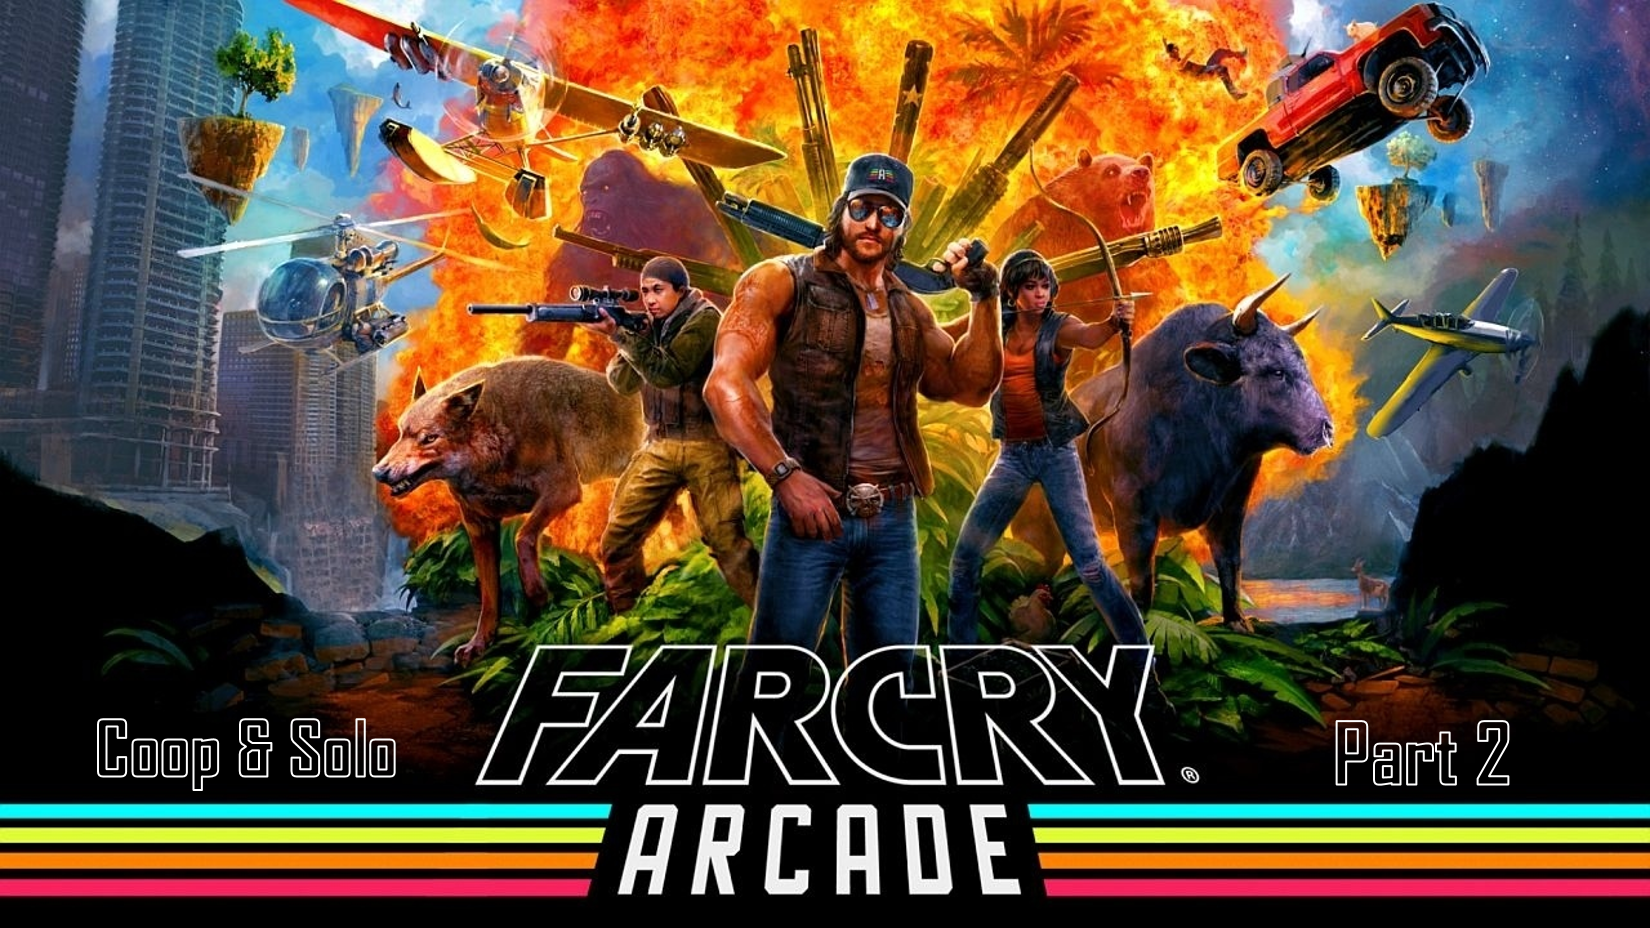 گیم پلی بازی(Far Cry 5 online arcade(Play Solo&Coop قسمت 2